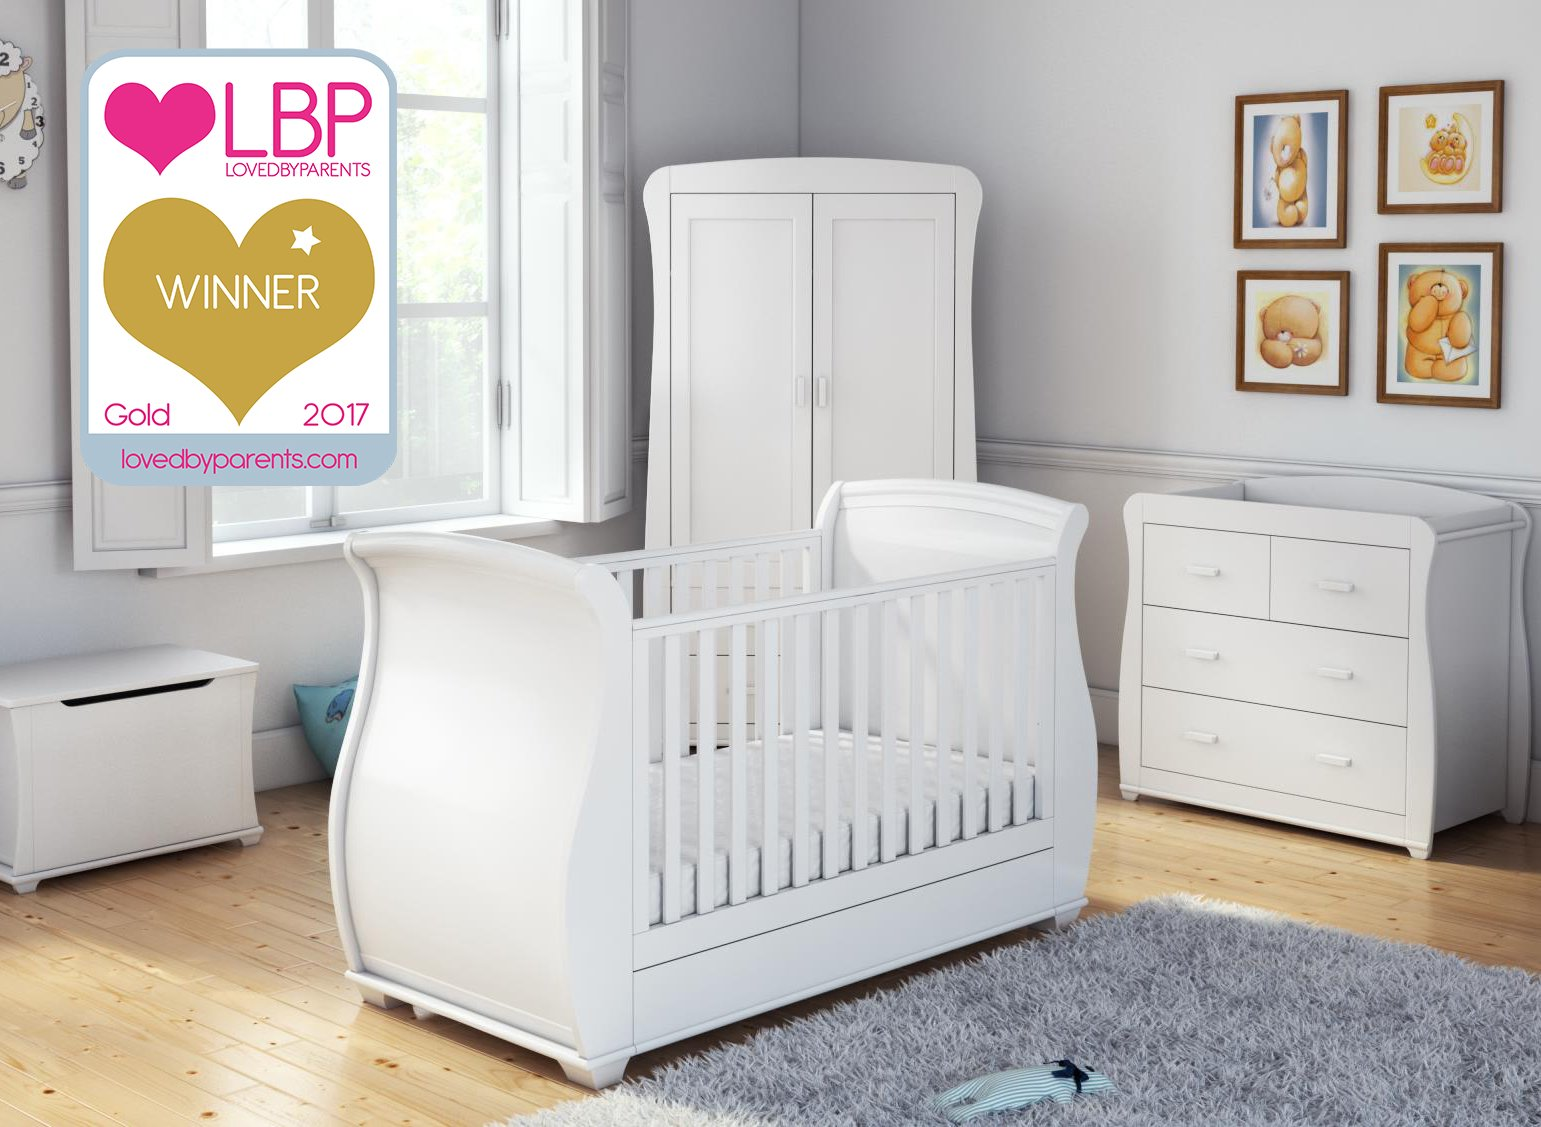 Babymore Bel Sleigh Cot Bed Dropside with Drawer (White)  Magnificent sleigh with appealing look of grandeur and solidity. Easily convert to junior bed/sofa/day bed, Meet British and European safety standards Single handed drop side mechanism allow easy access to your baby. 9